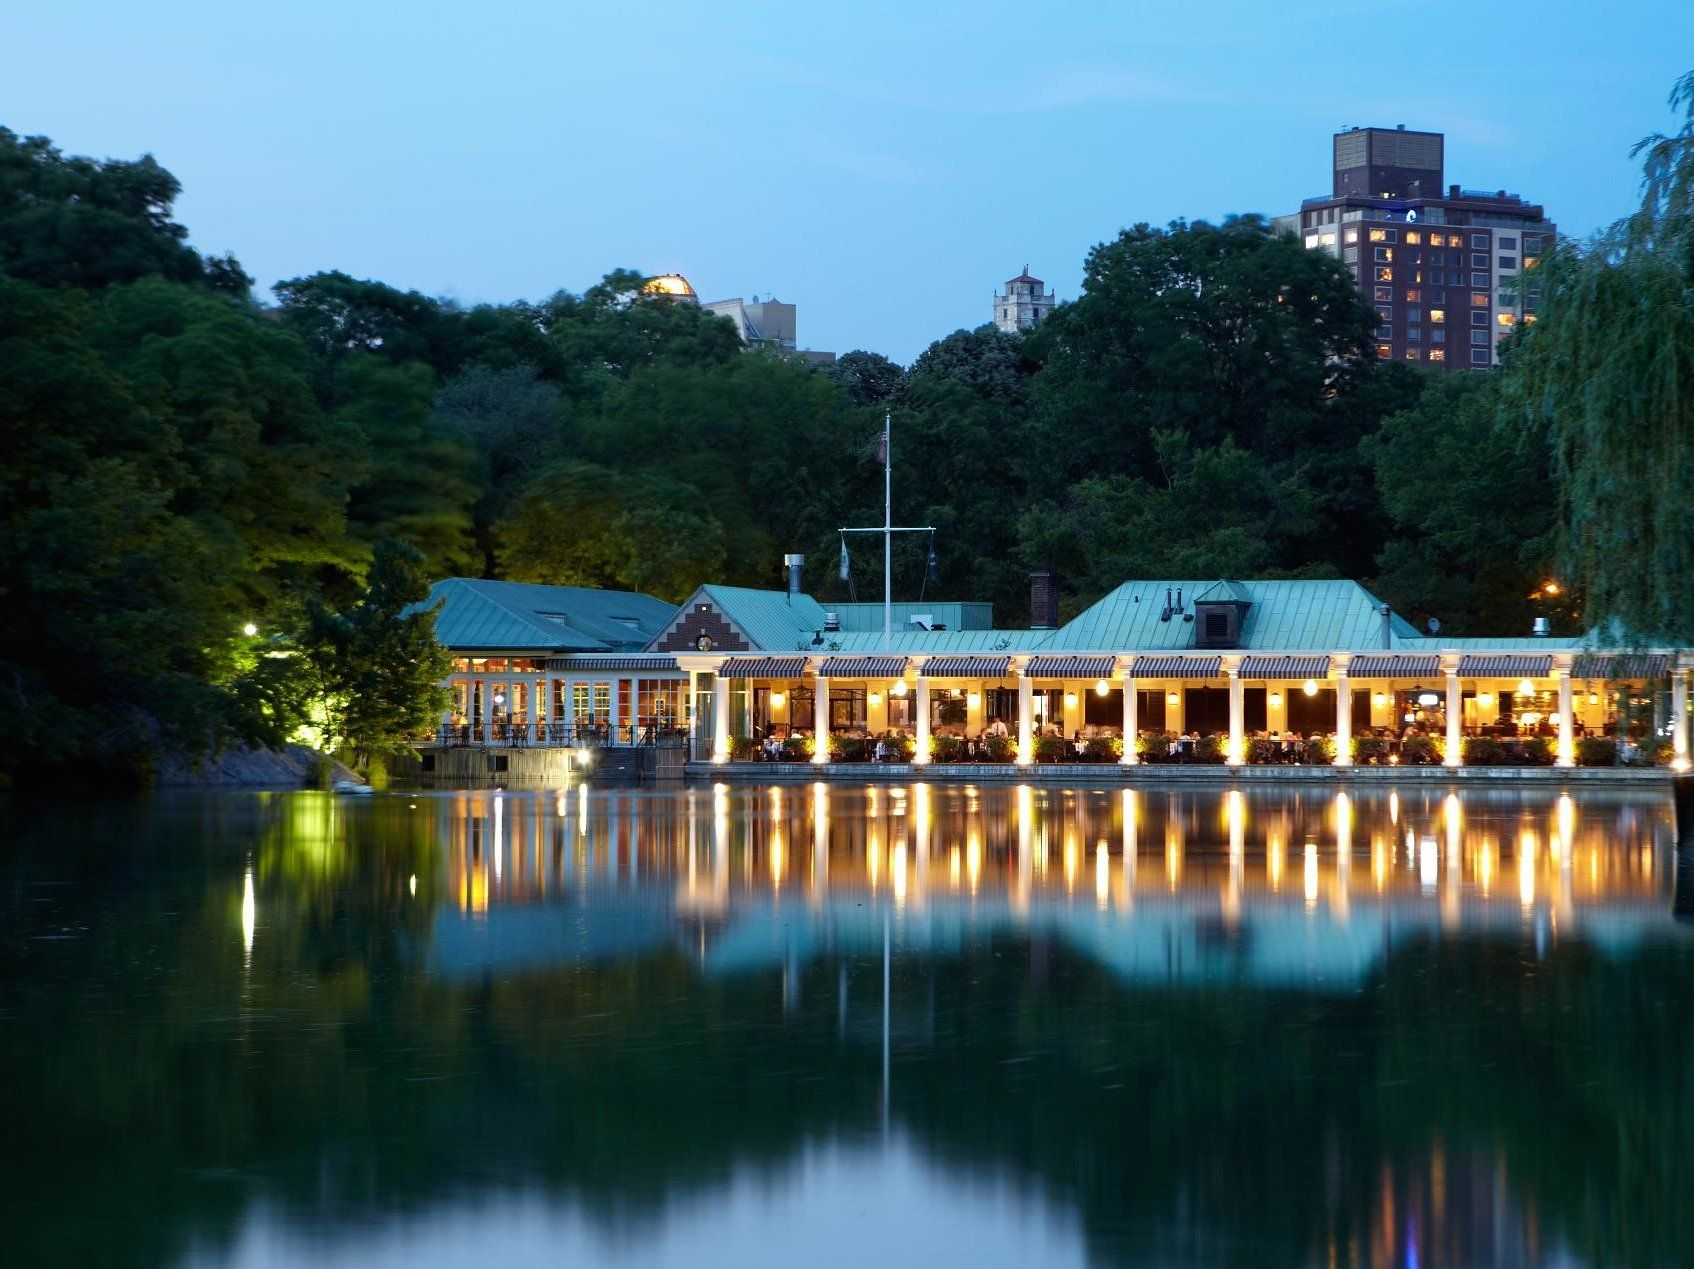 The Definitive Sex And The City Guide To New York Boathouse - Central park on east 72nd street